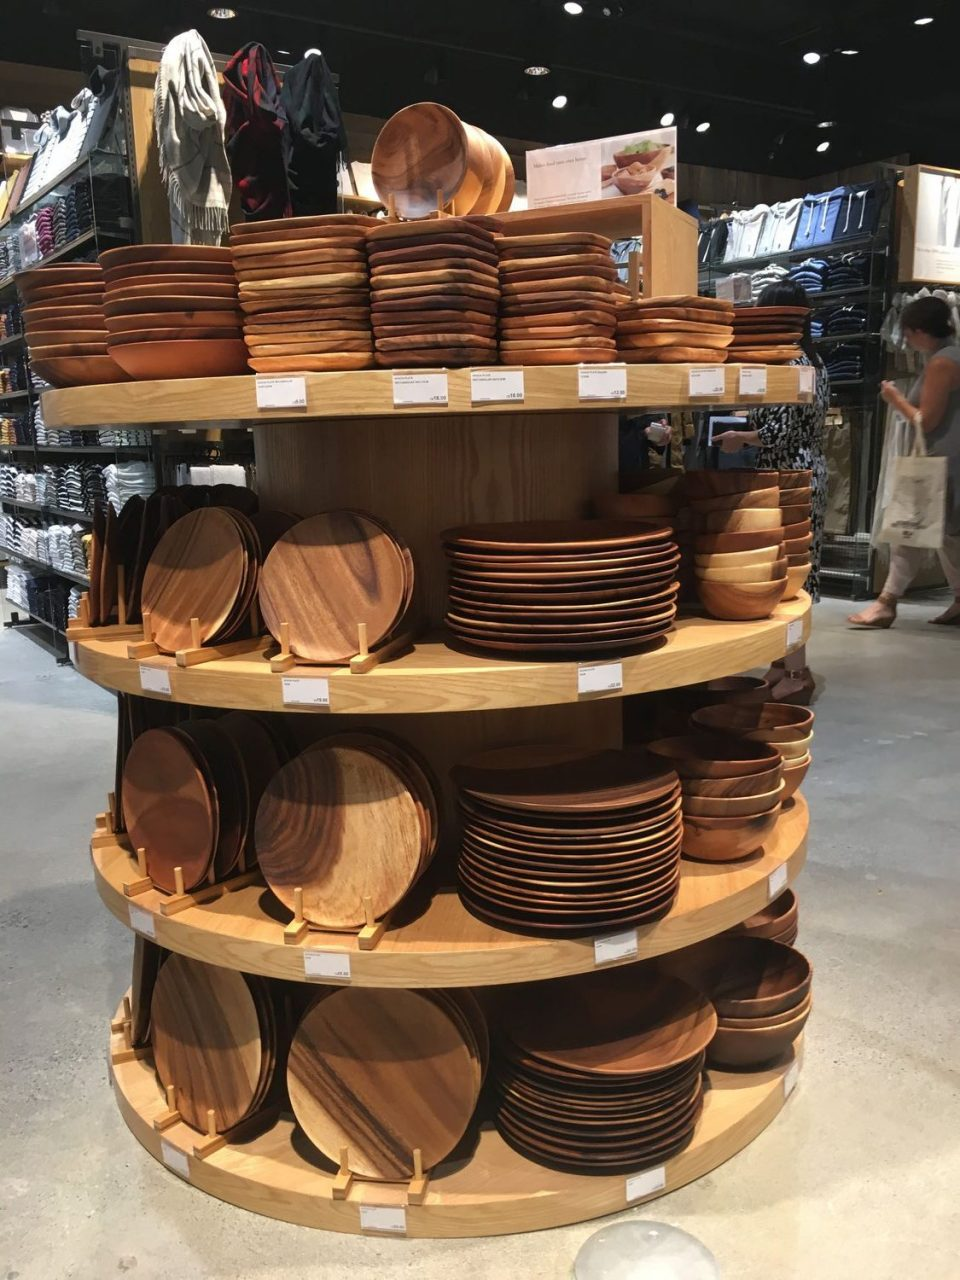 Wood serving dishes.